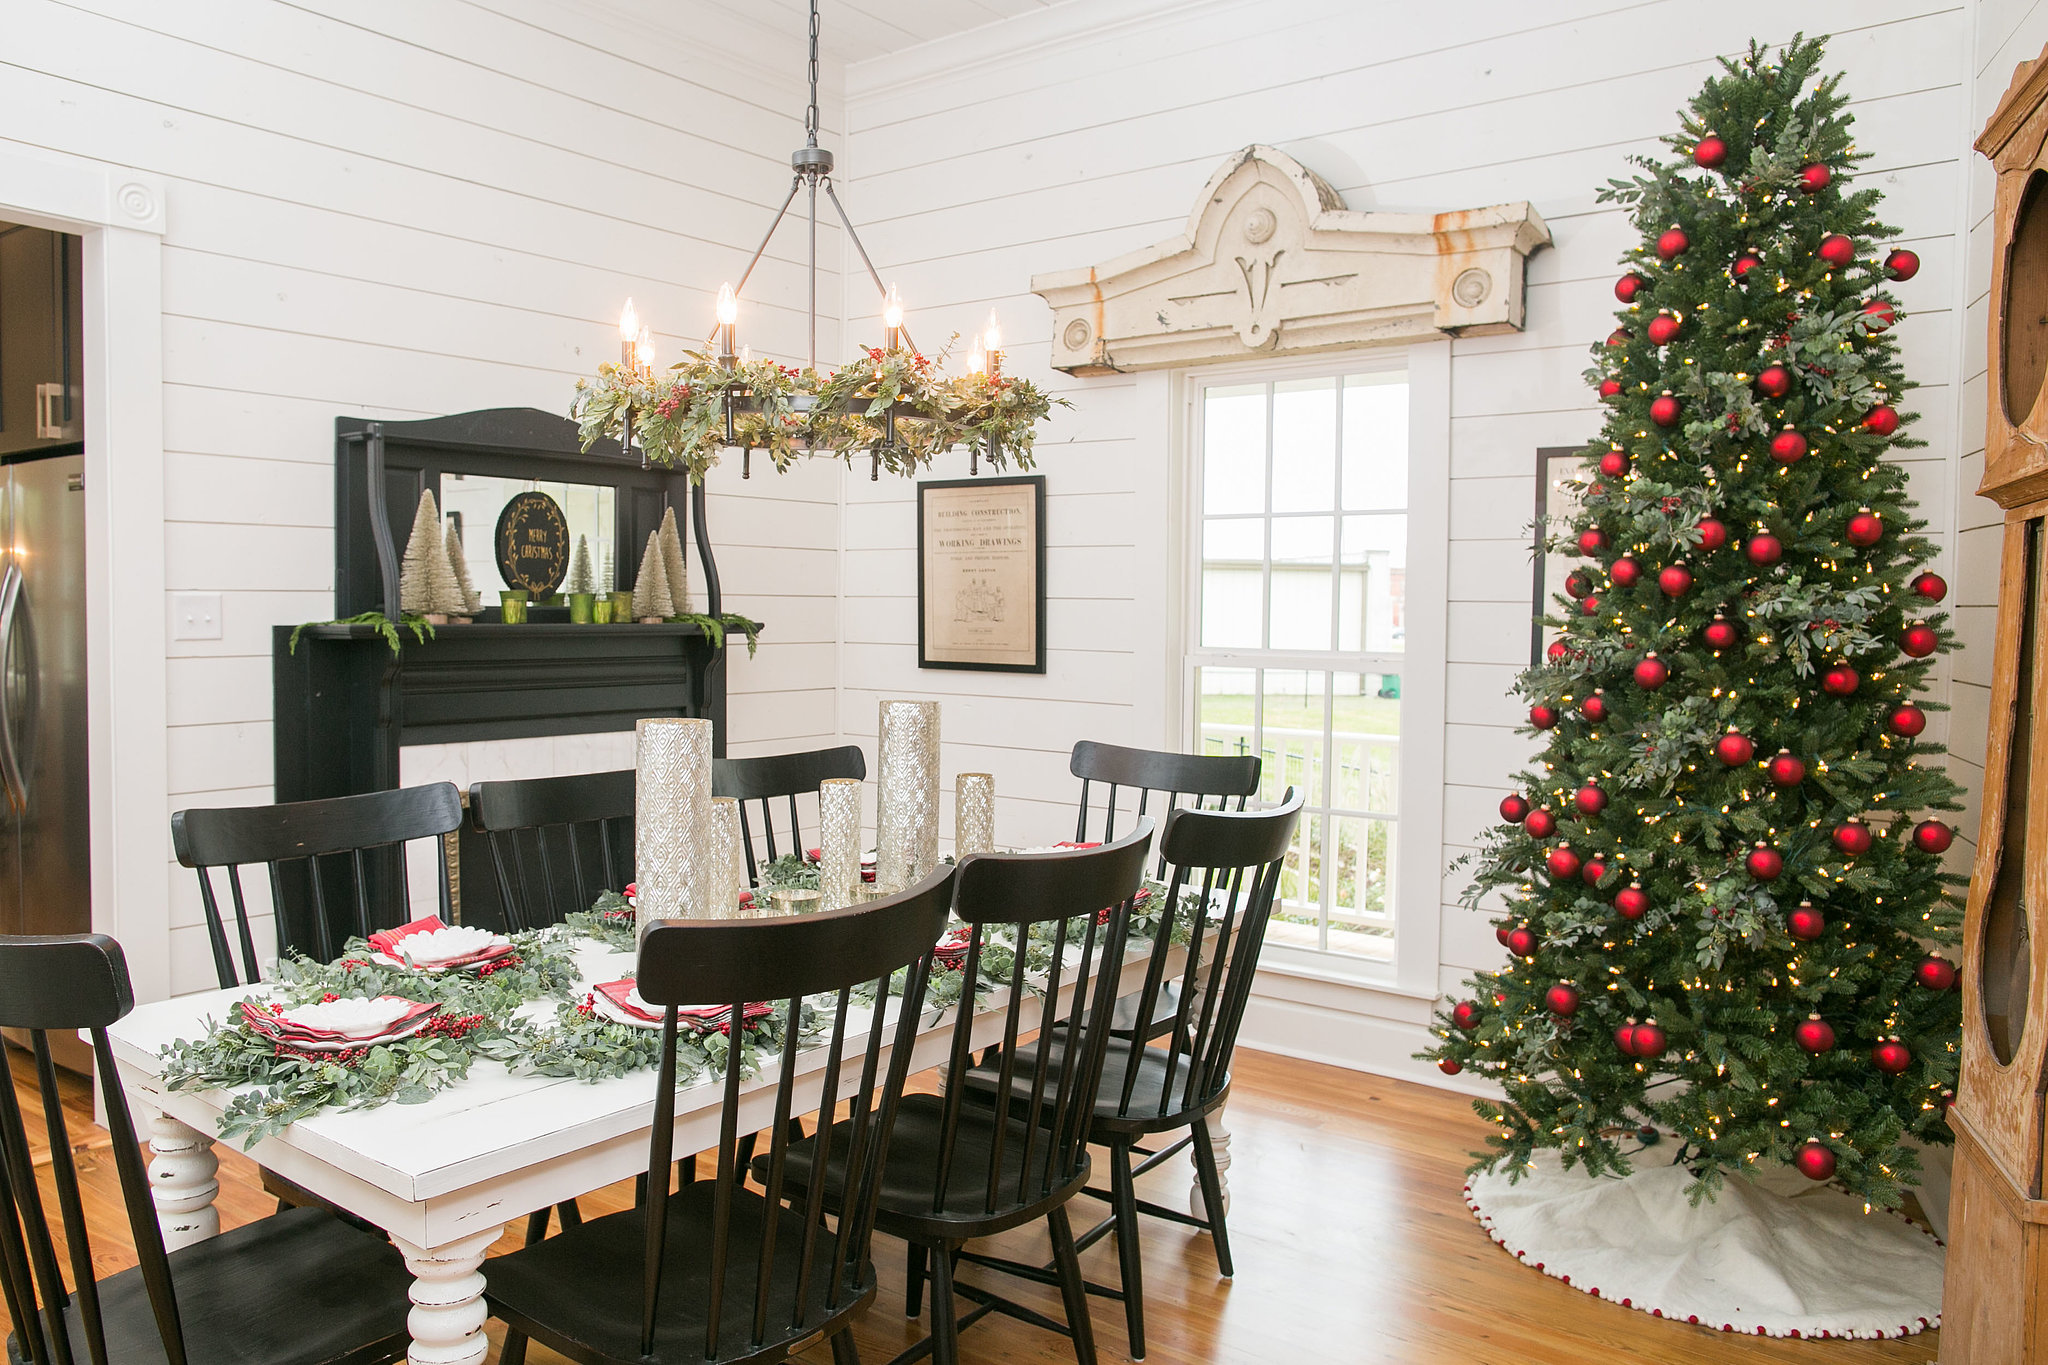 Fixer upper 39 s bed and breakfast on season 3 popsugar home for A bed and breakfast